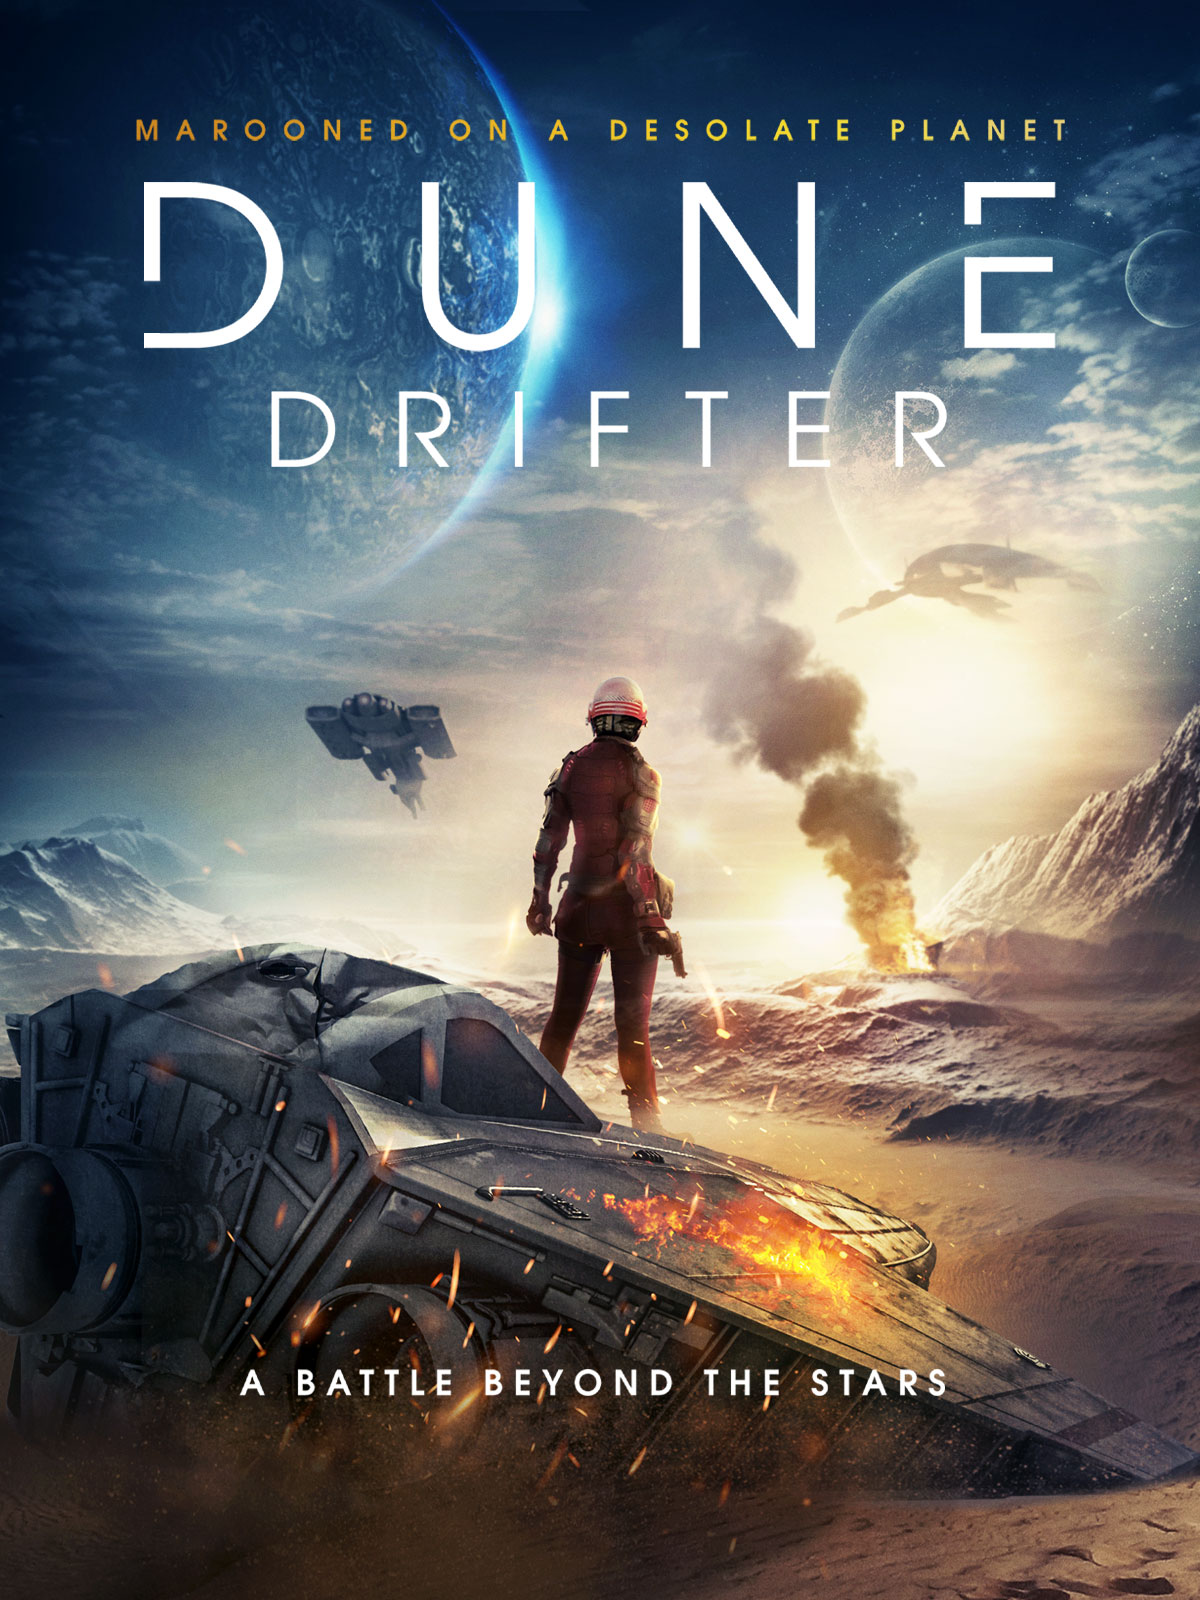 Dune Drifter Military Sci-Fi Horror Movie Gets New Trailer, Will Release December